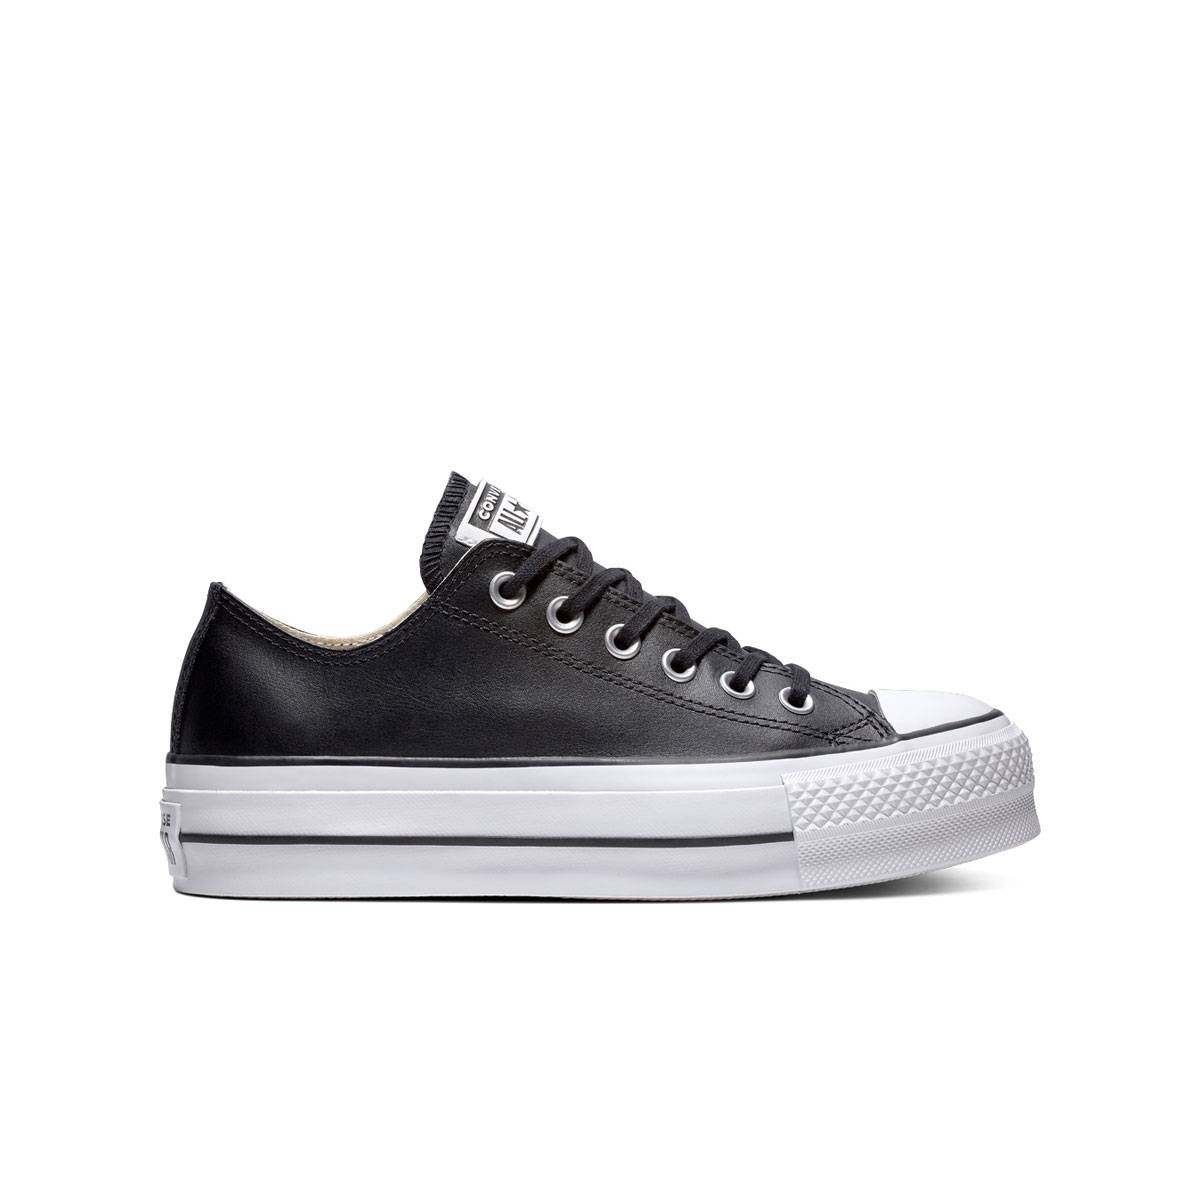 Converse Chuck Taylor All Star Lift Leather Nera - 39.5 - Donna